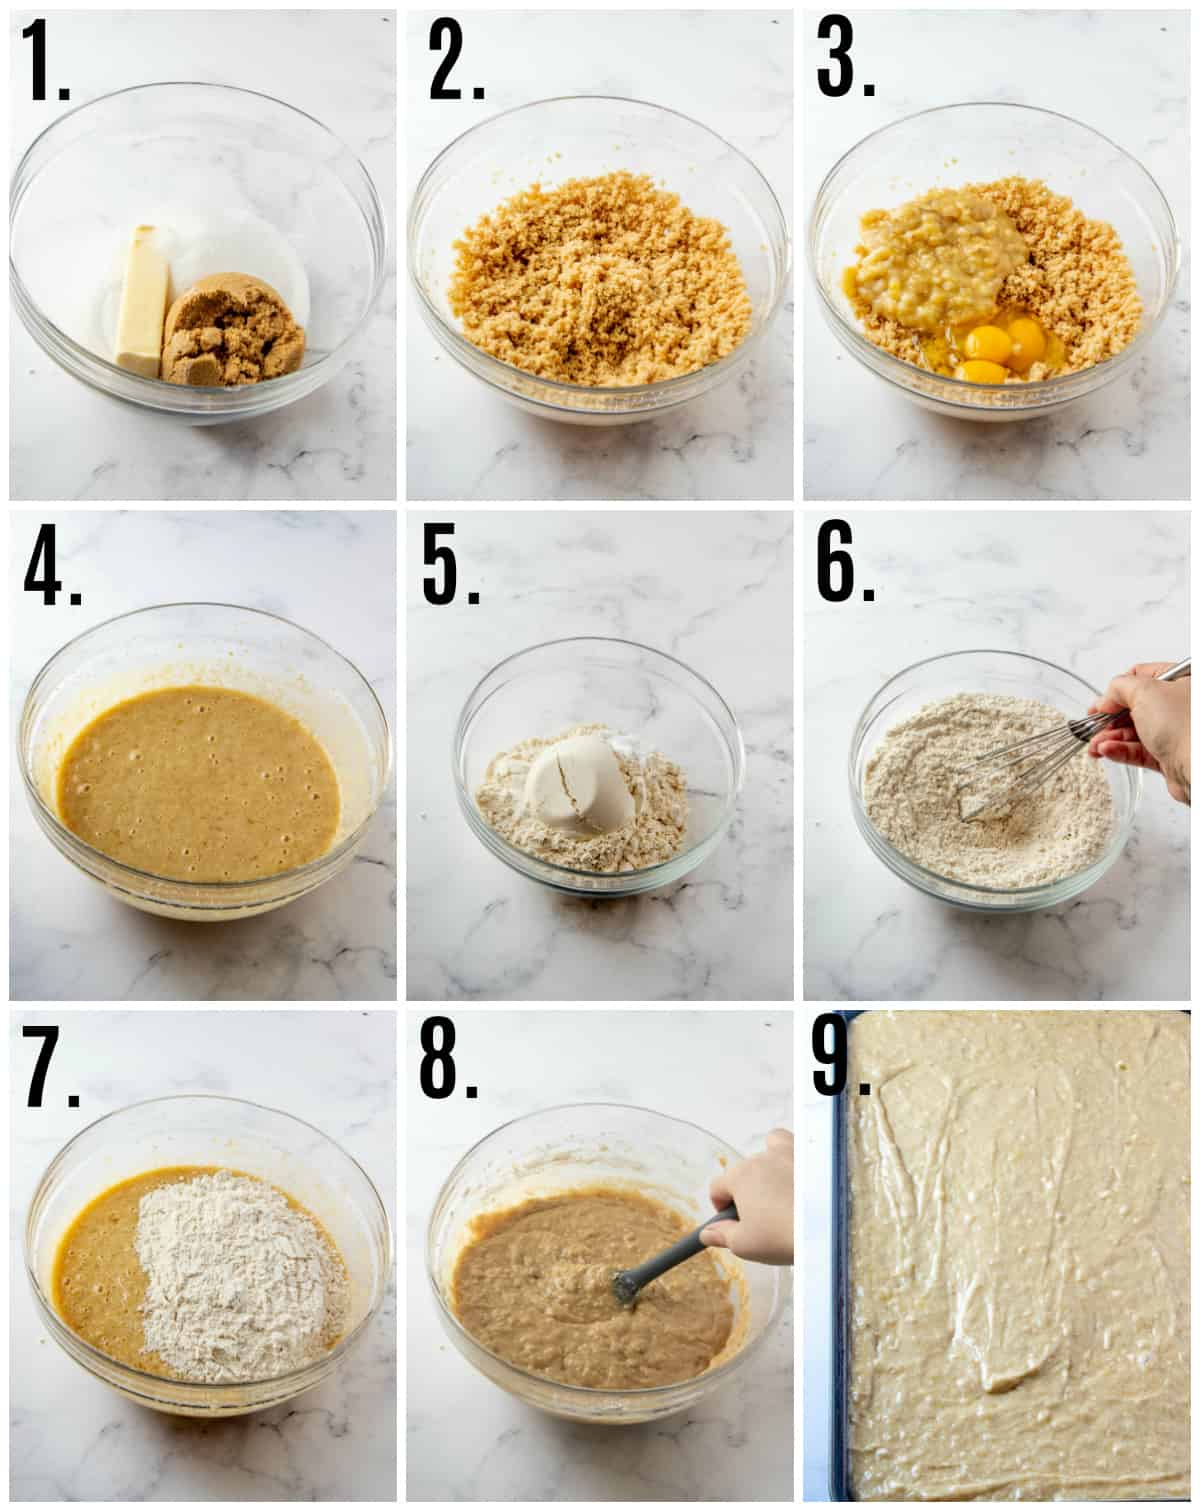 Step by step photos on how to make banana bars